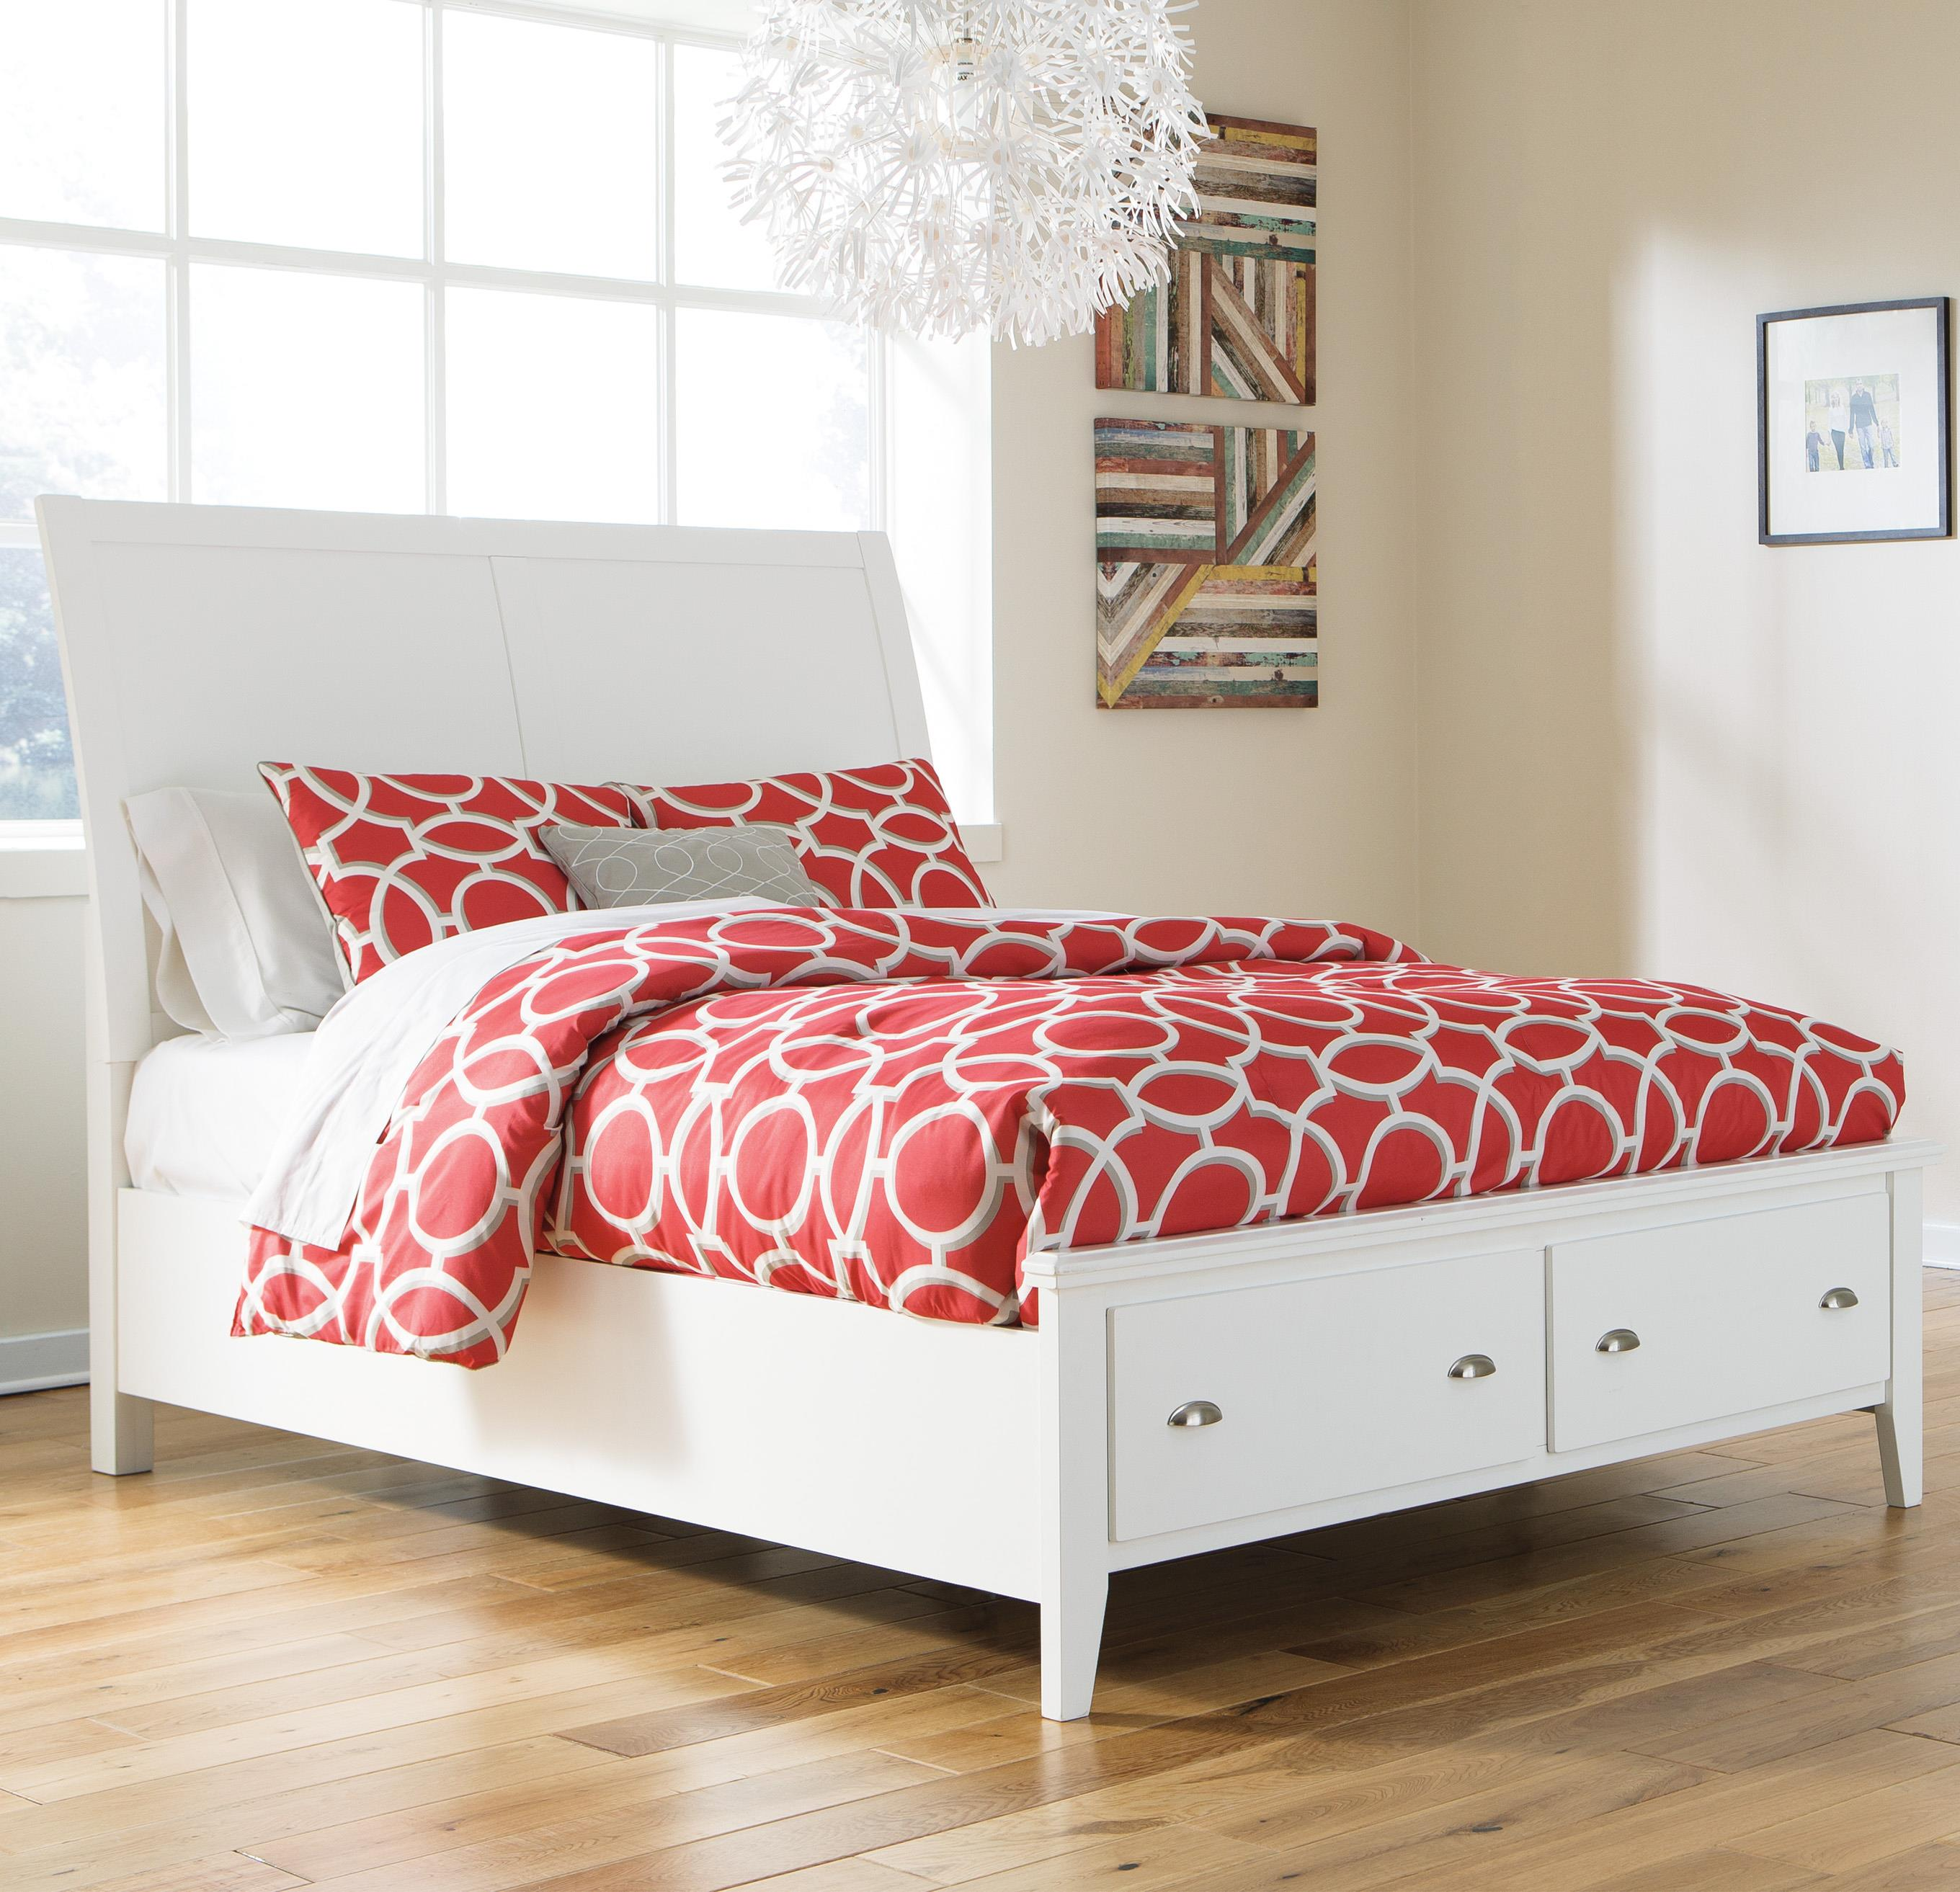 Signature Design by Ashley Langlor King Storage Bed with Sleigh Headboard - Item Number: B592-58+56S+97S